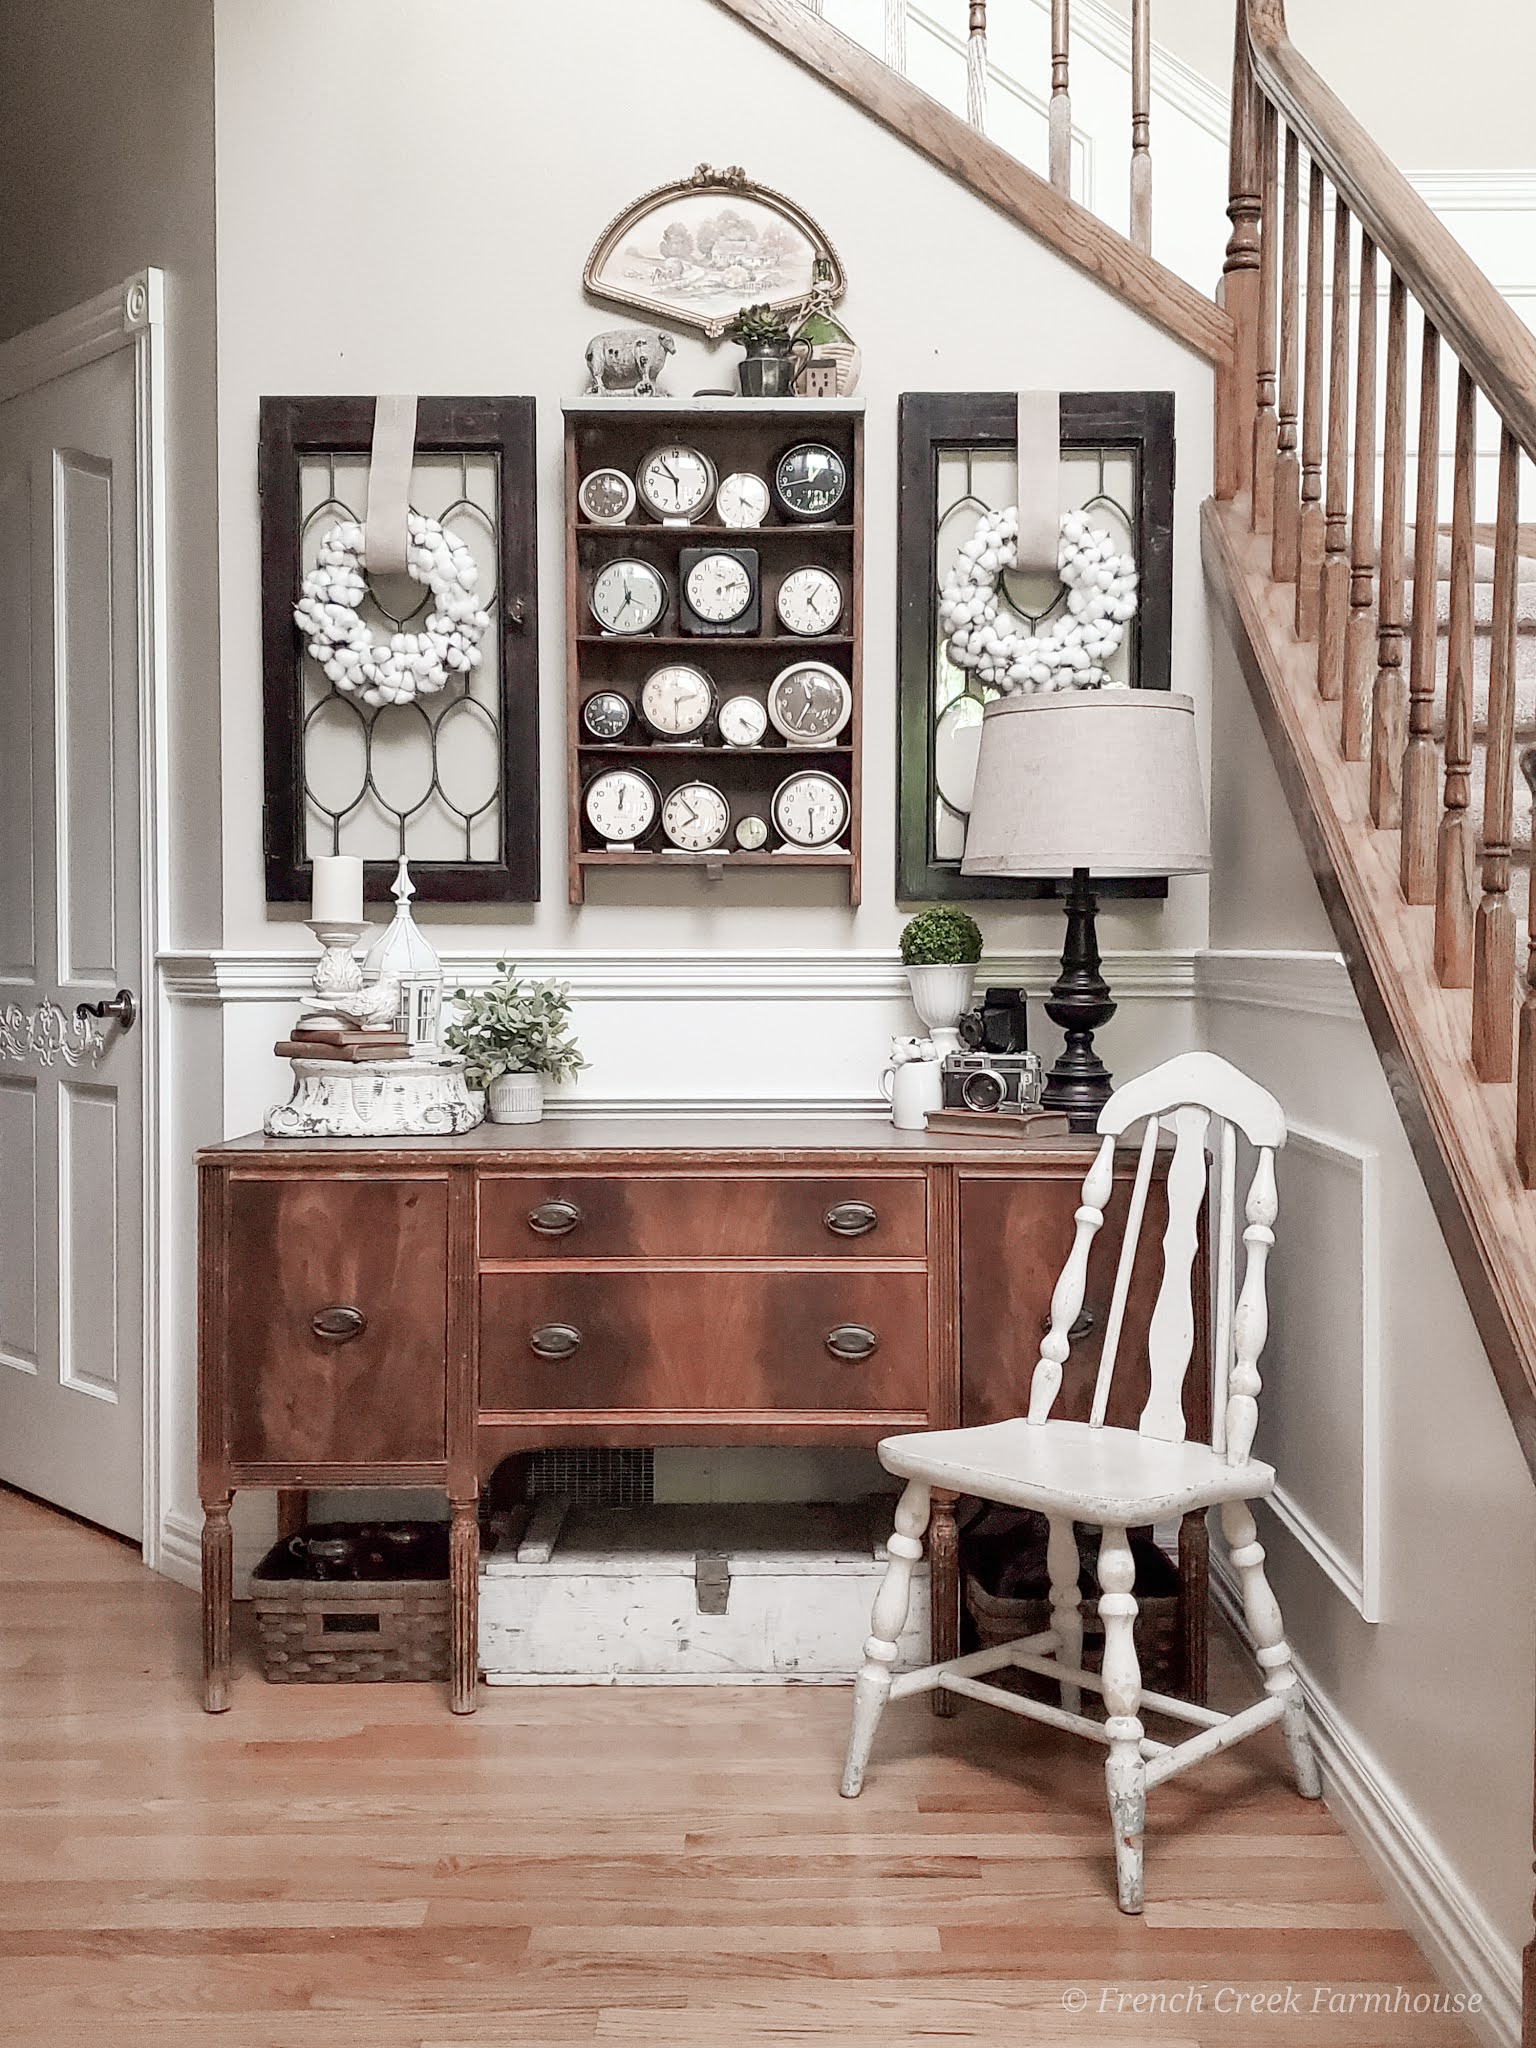 Using key vintage pieces will give your home the aesthetic you want